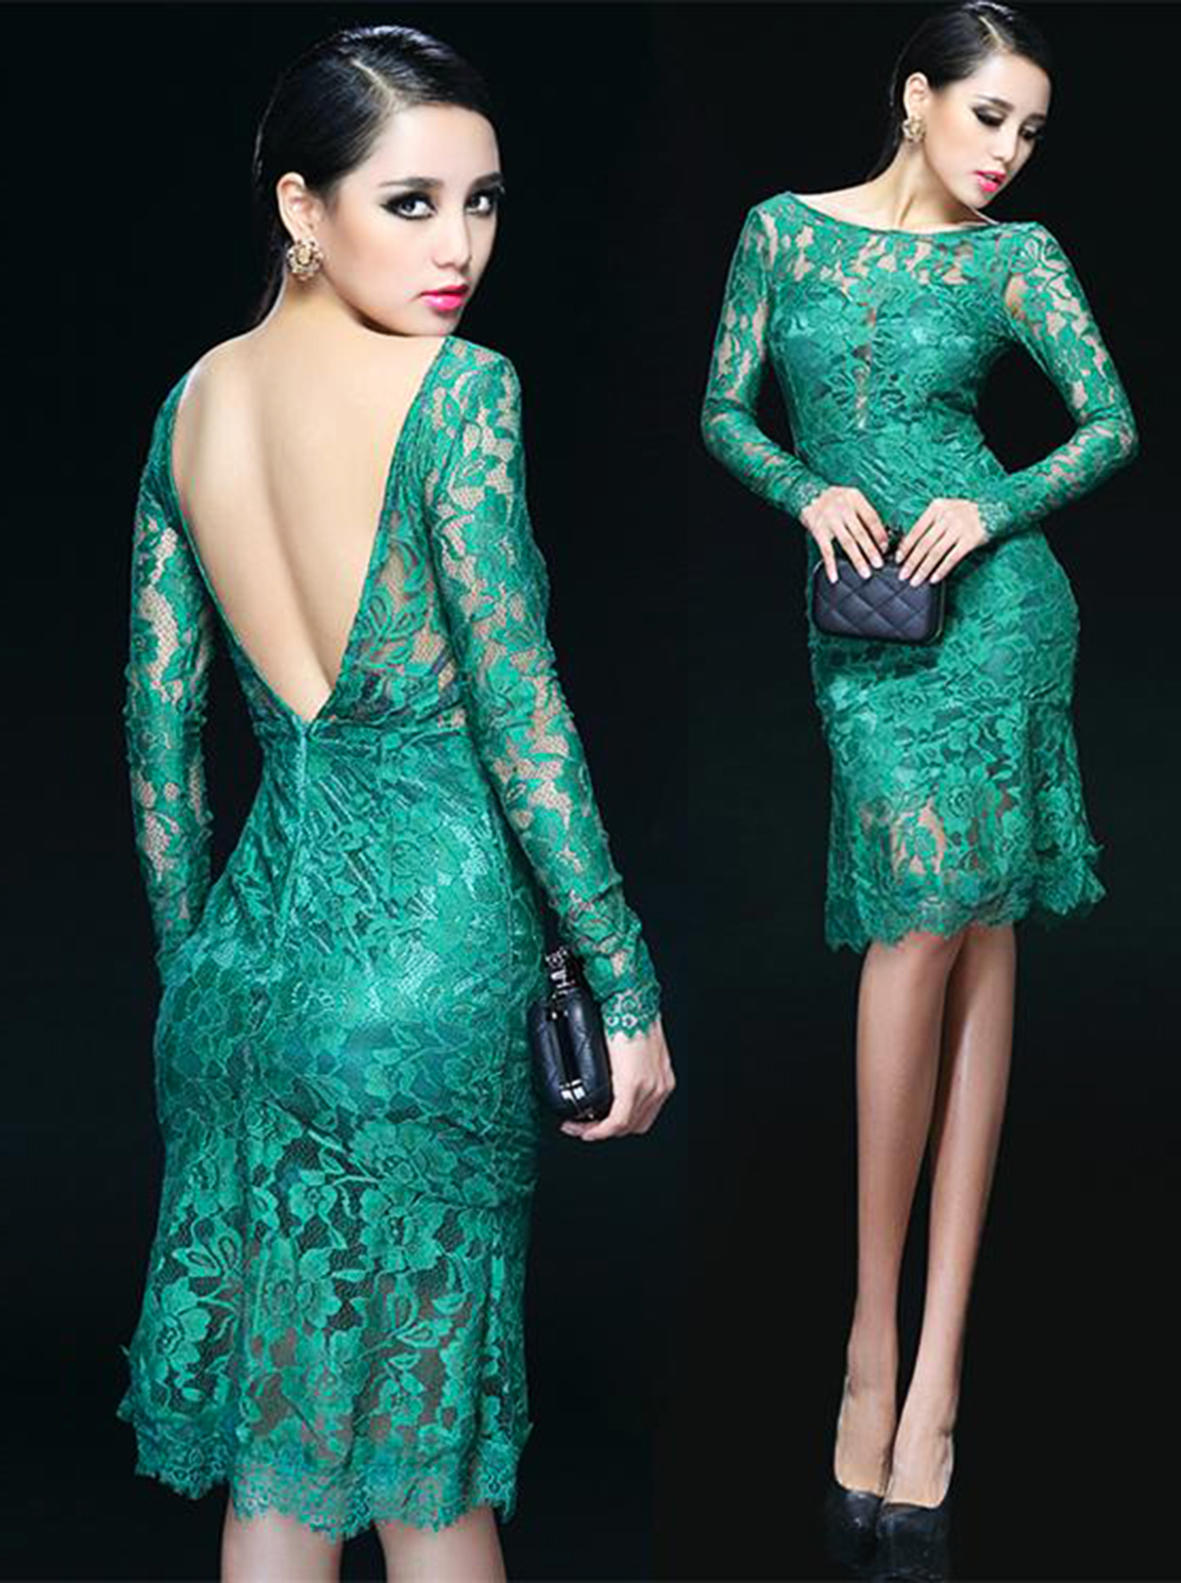 Emerald Green Backless Lace Cocktail from letsglamup'sbooth | My